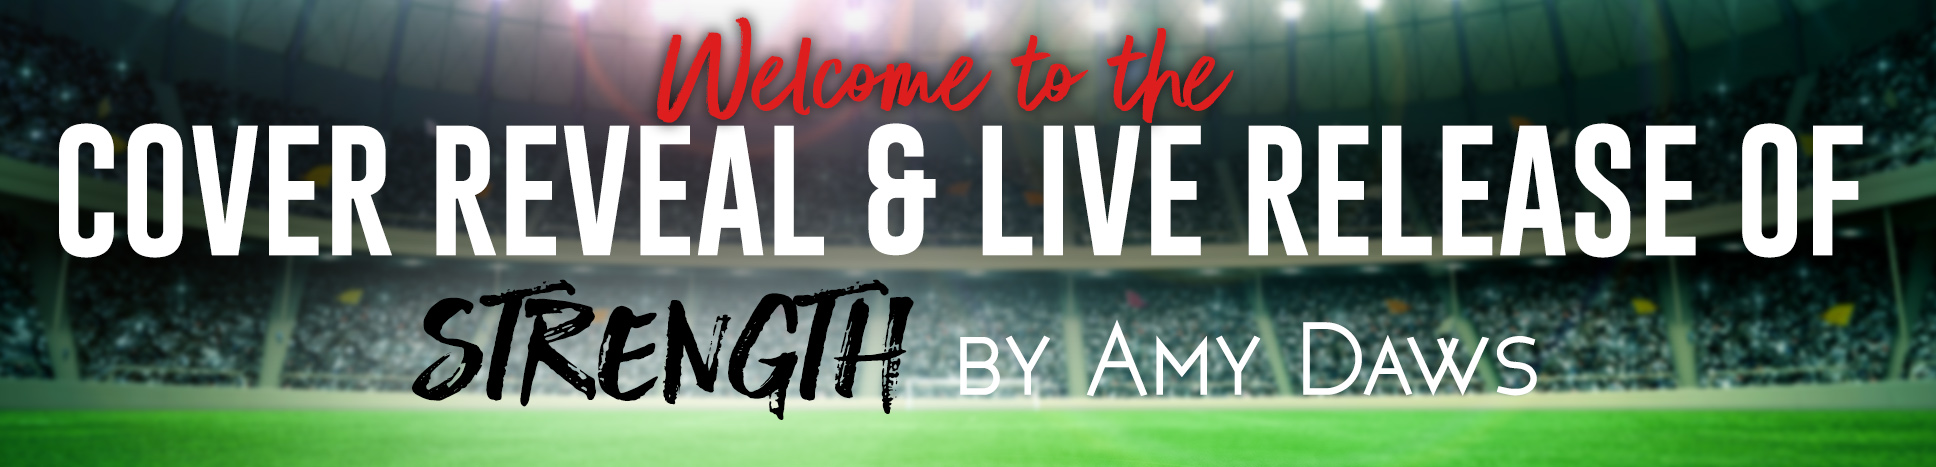 Cover Reveal and Live Release of Strength by Amy Daws with Review